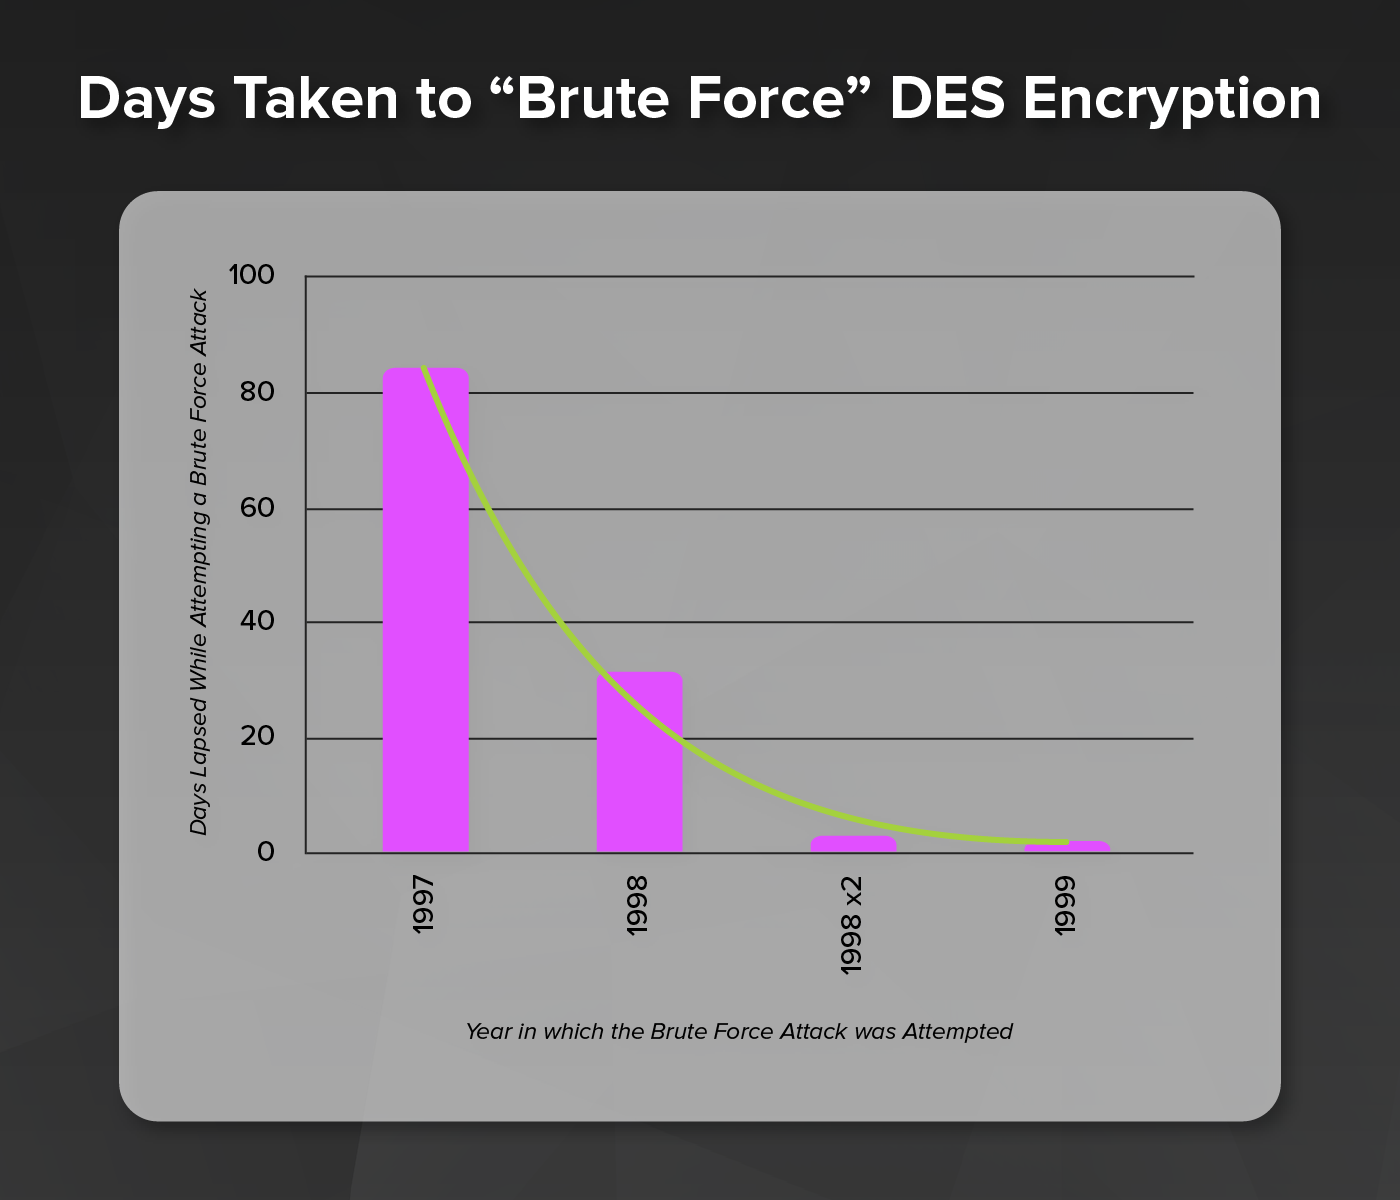 How-Long-to-Brute-Force-DES-encryption